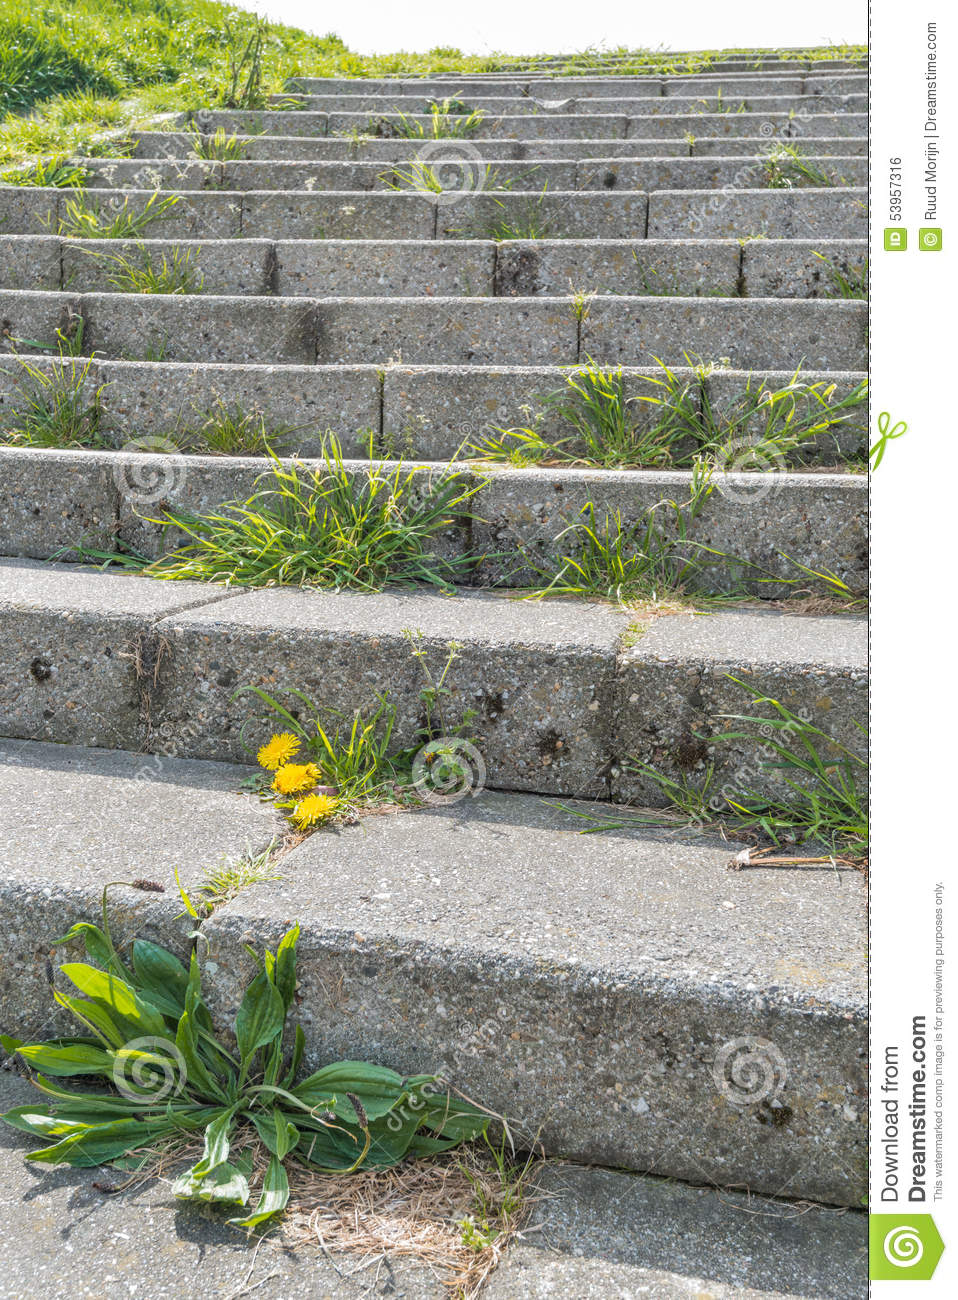 Concrete Stairway With Different Types Of Weeds On The